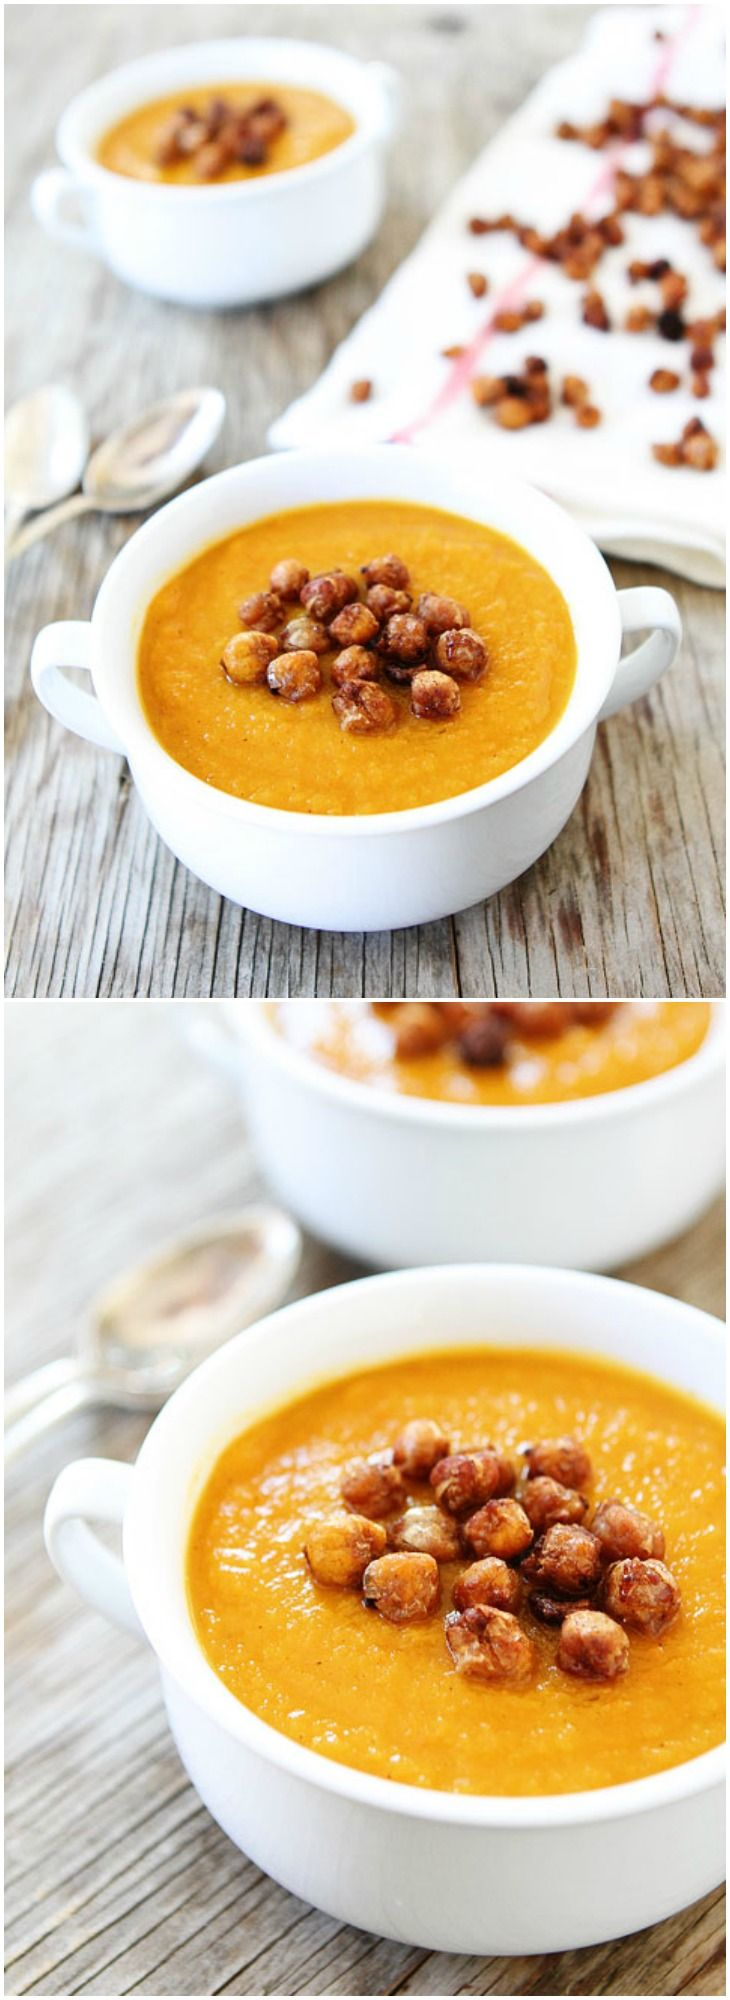 Slow Cooker Butternut Squash Soup Recipe on twopeasandtheirpod.com The BEST butternut squash soup and it is made in the crockpot! It is our favorite fall soup!